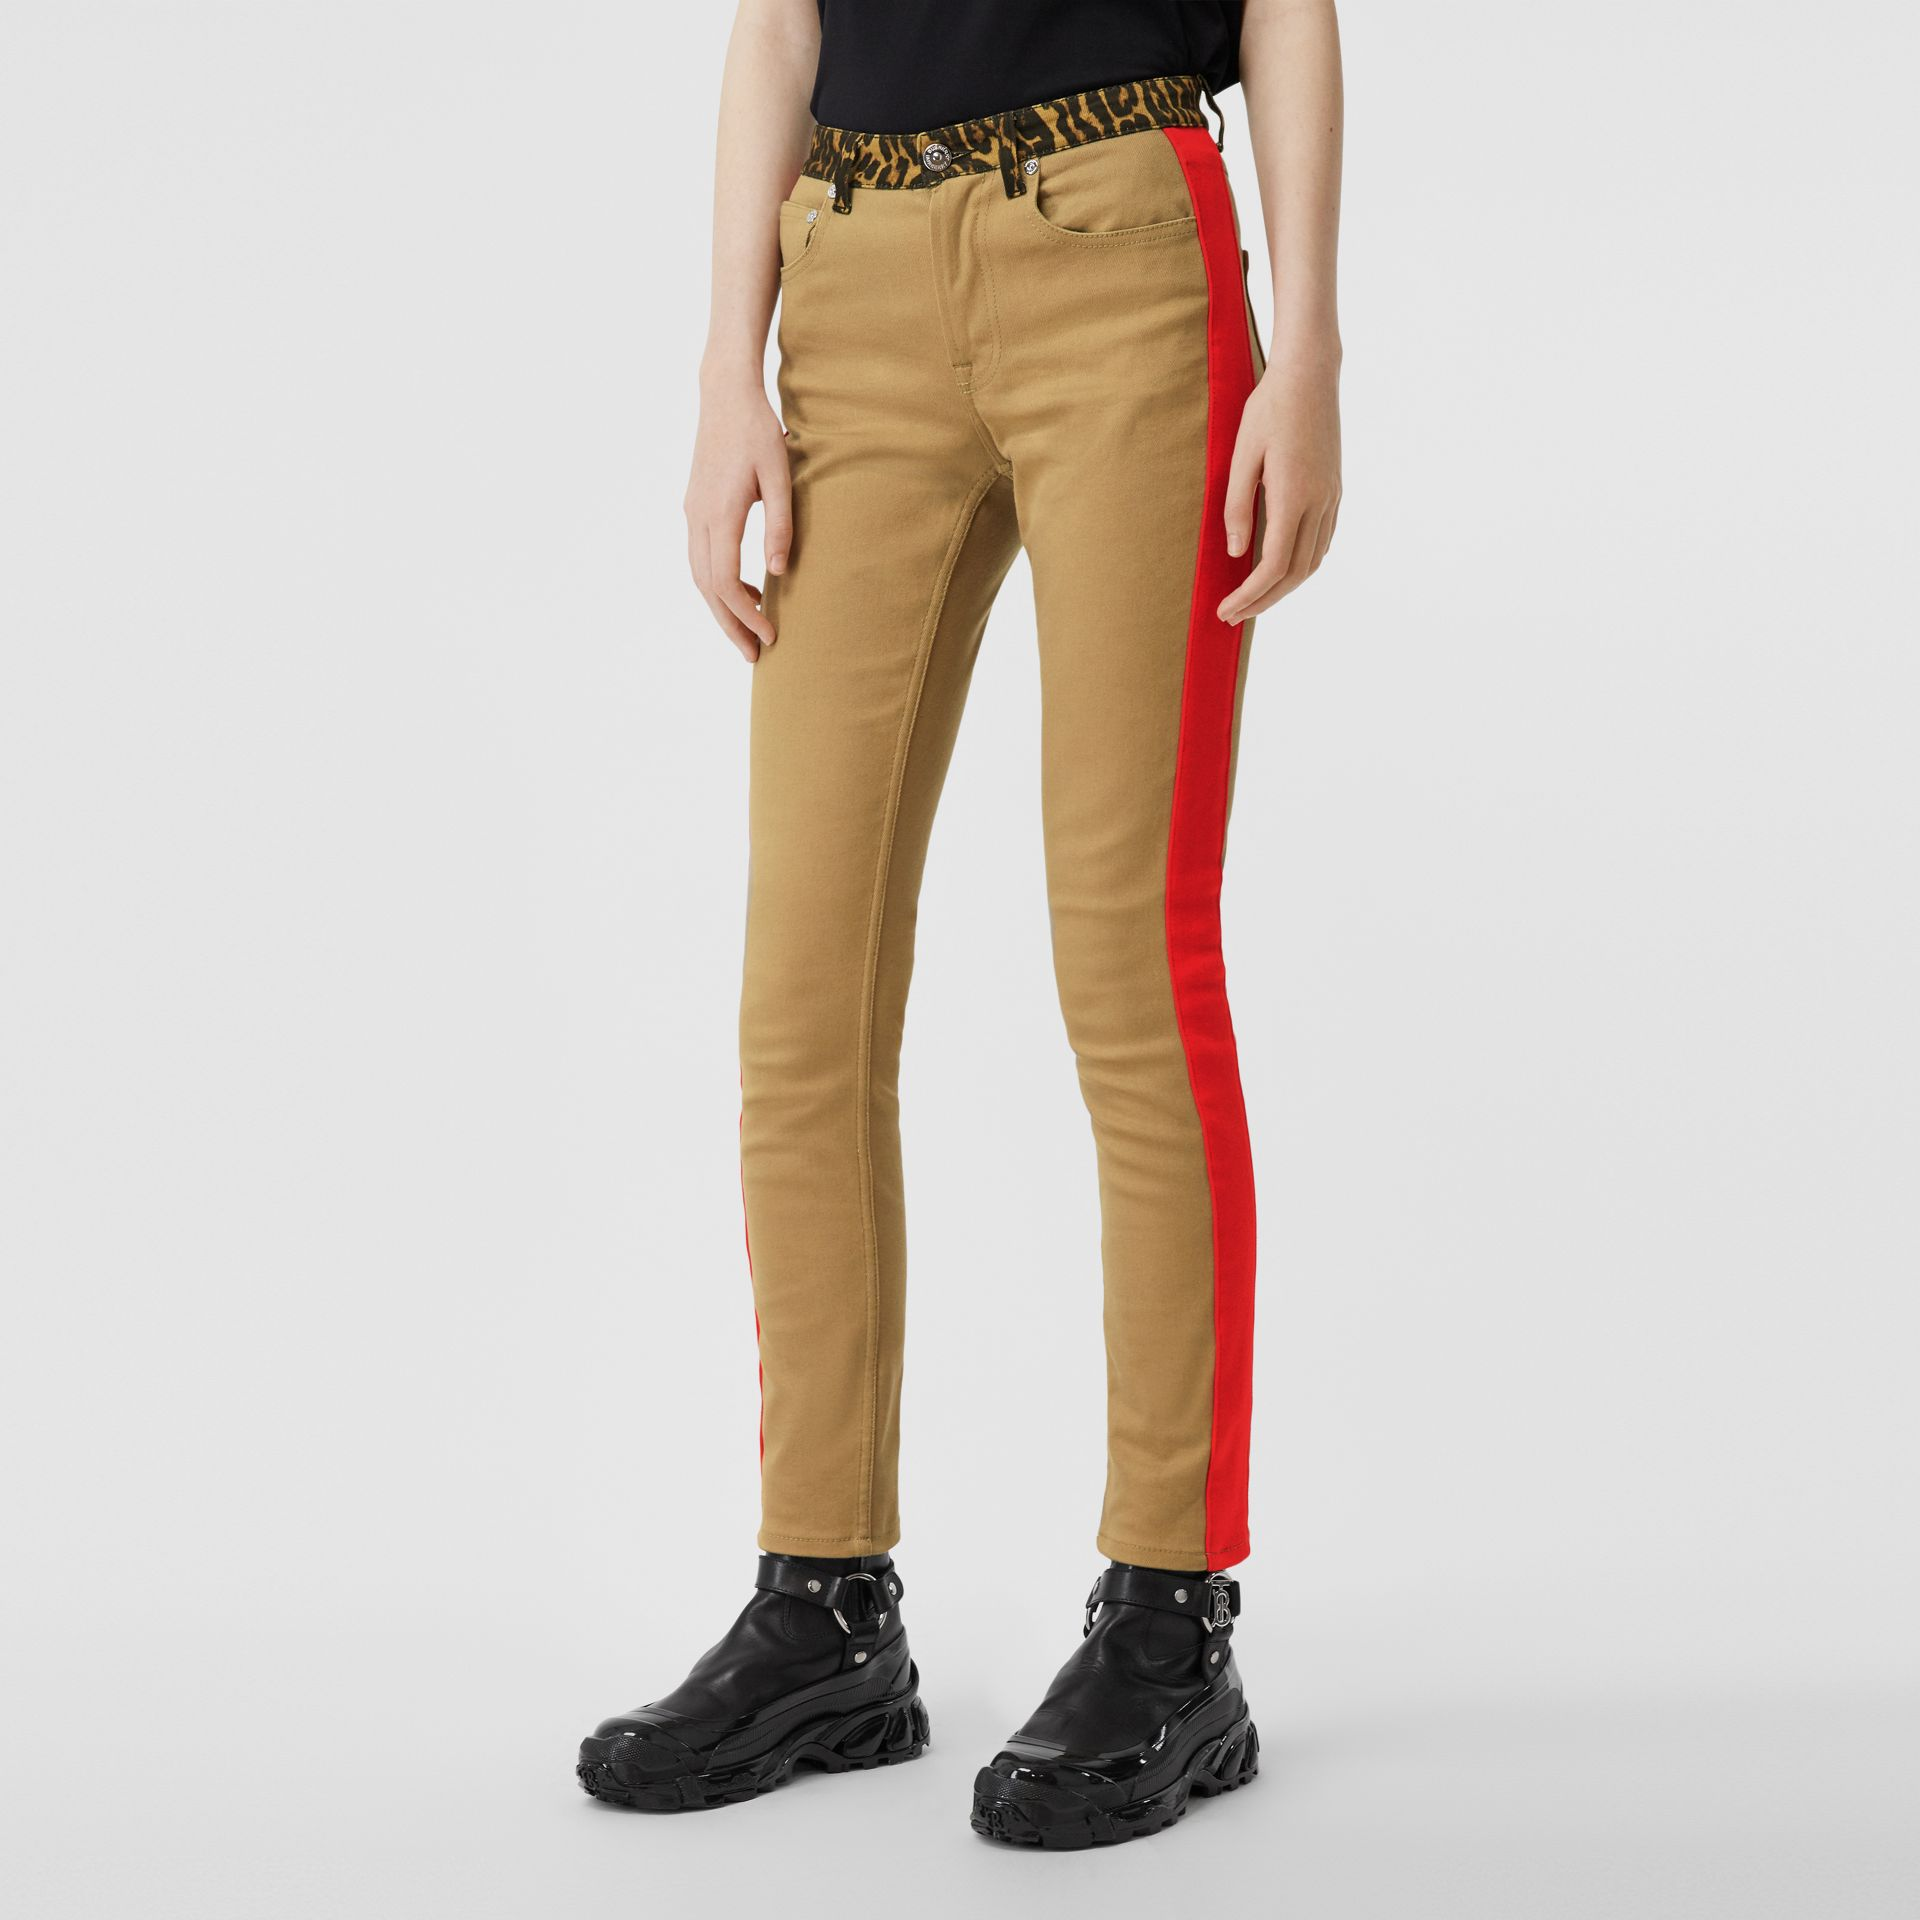 Skinny Fit Leopard Print Trim Japanese Denim Jeans in Rich Olive - Women | Burberry United Kingdom - gallery image 4